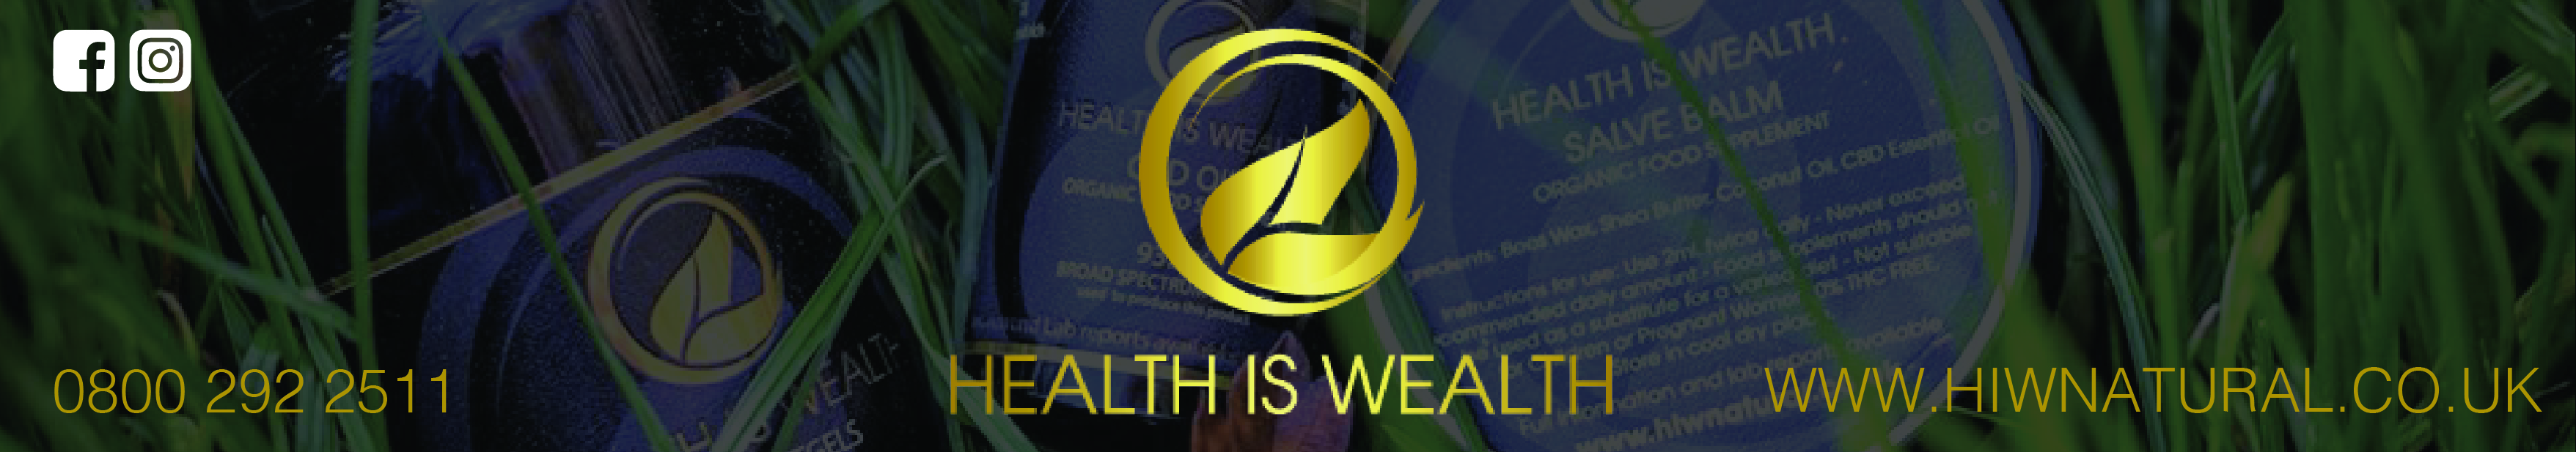 health-is-wealth-cbd